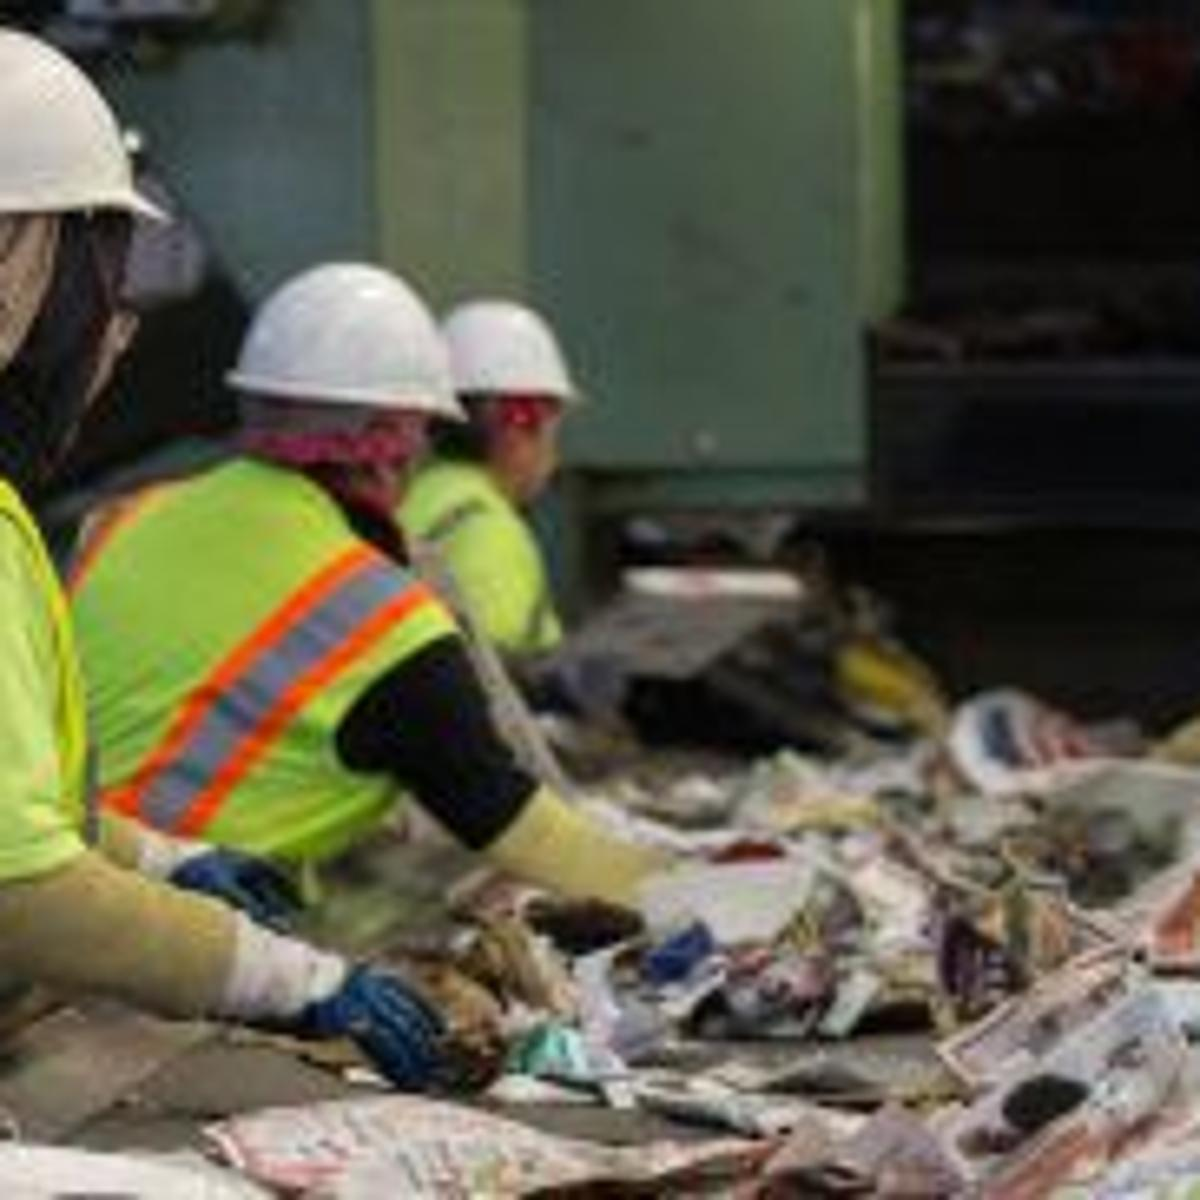 Phoenix recycling officials: Plastic bags contribute to lost time